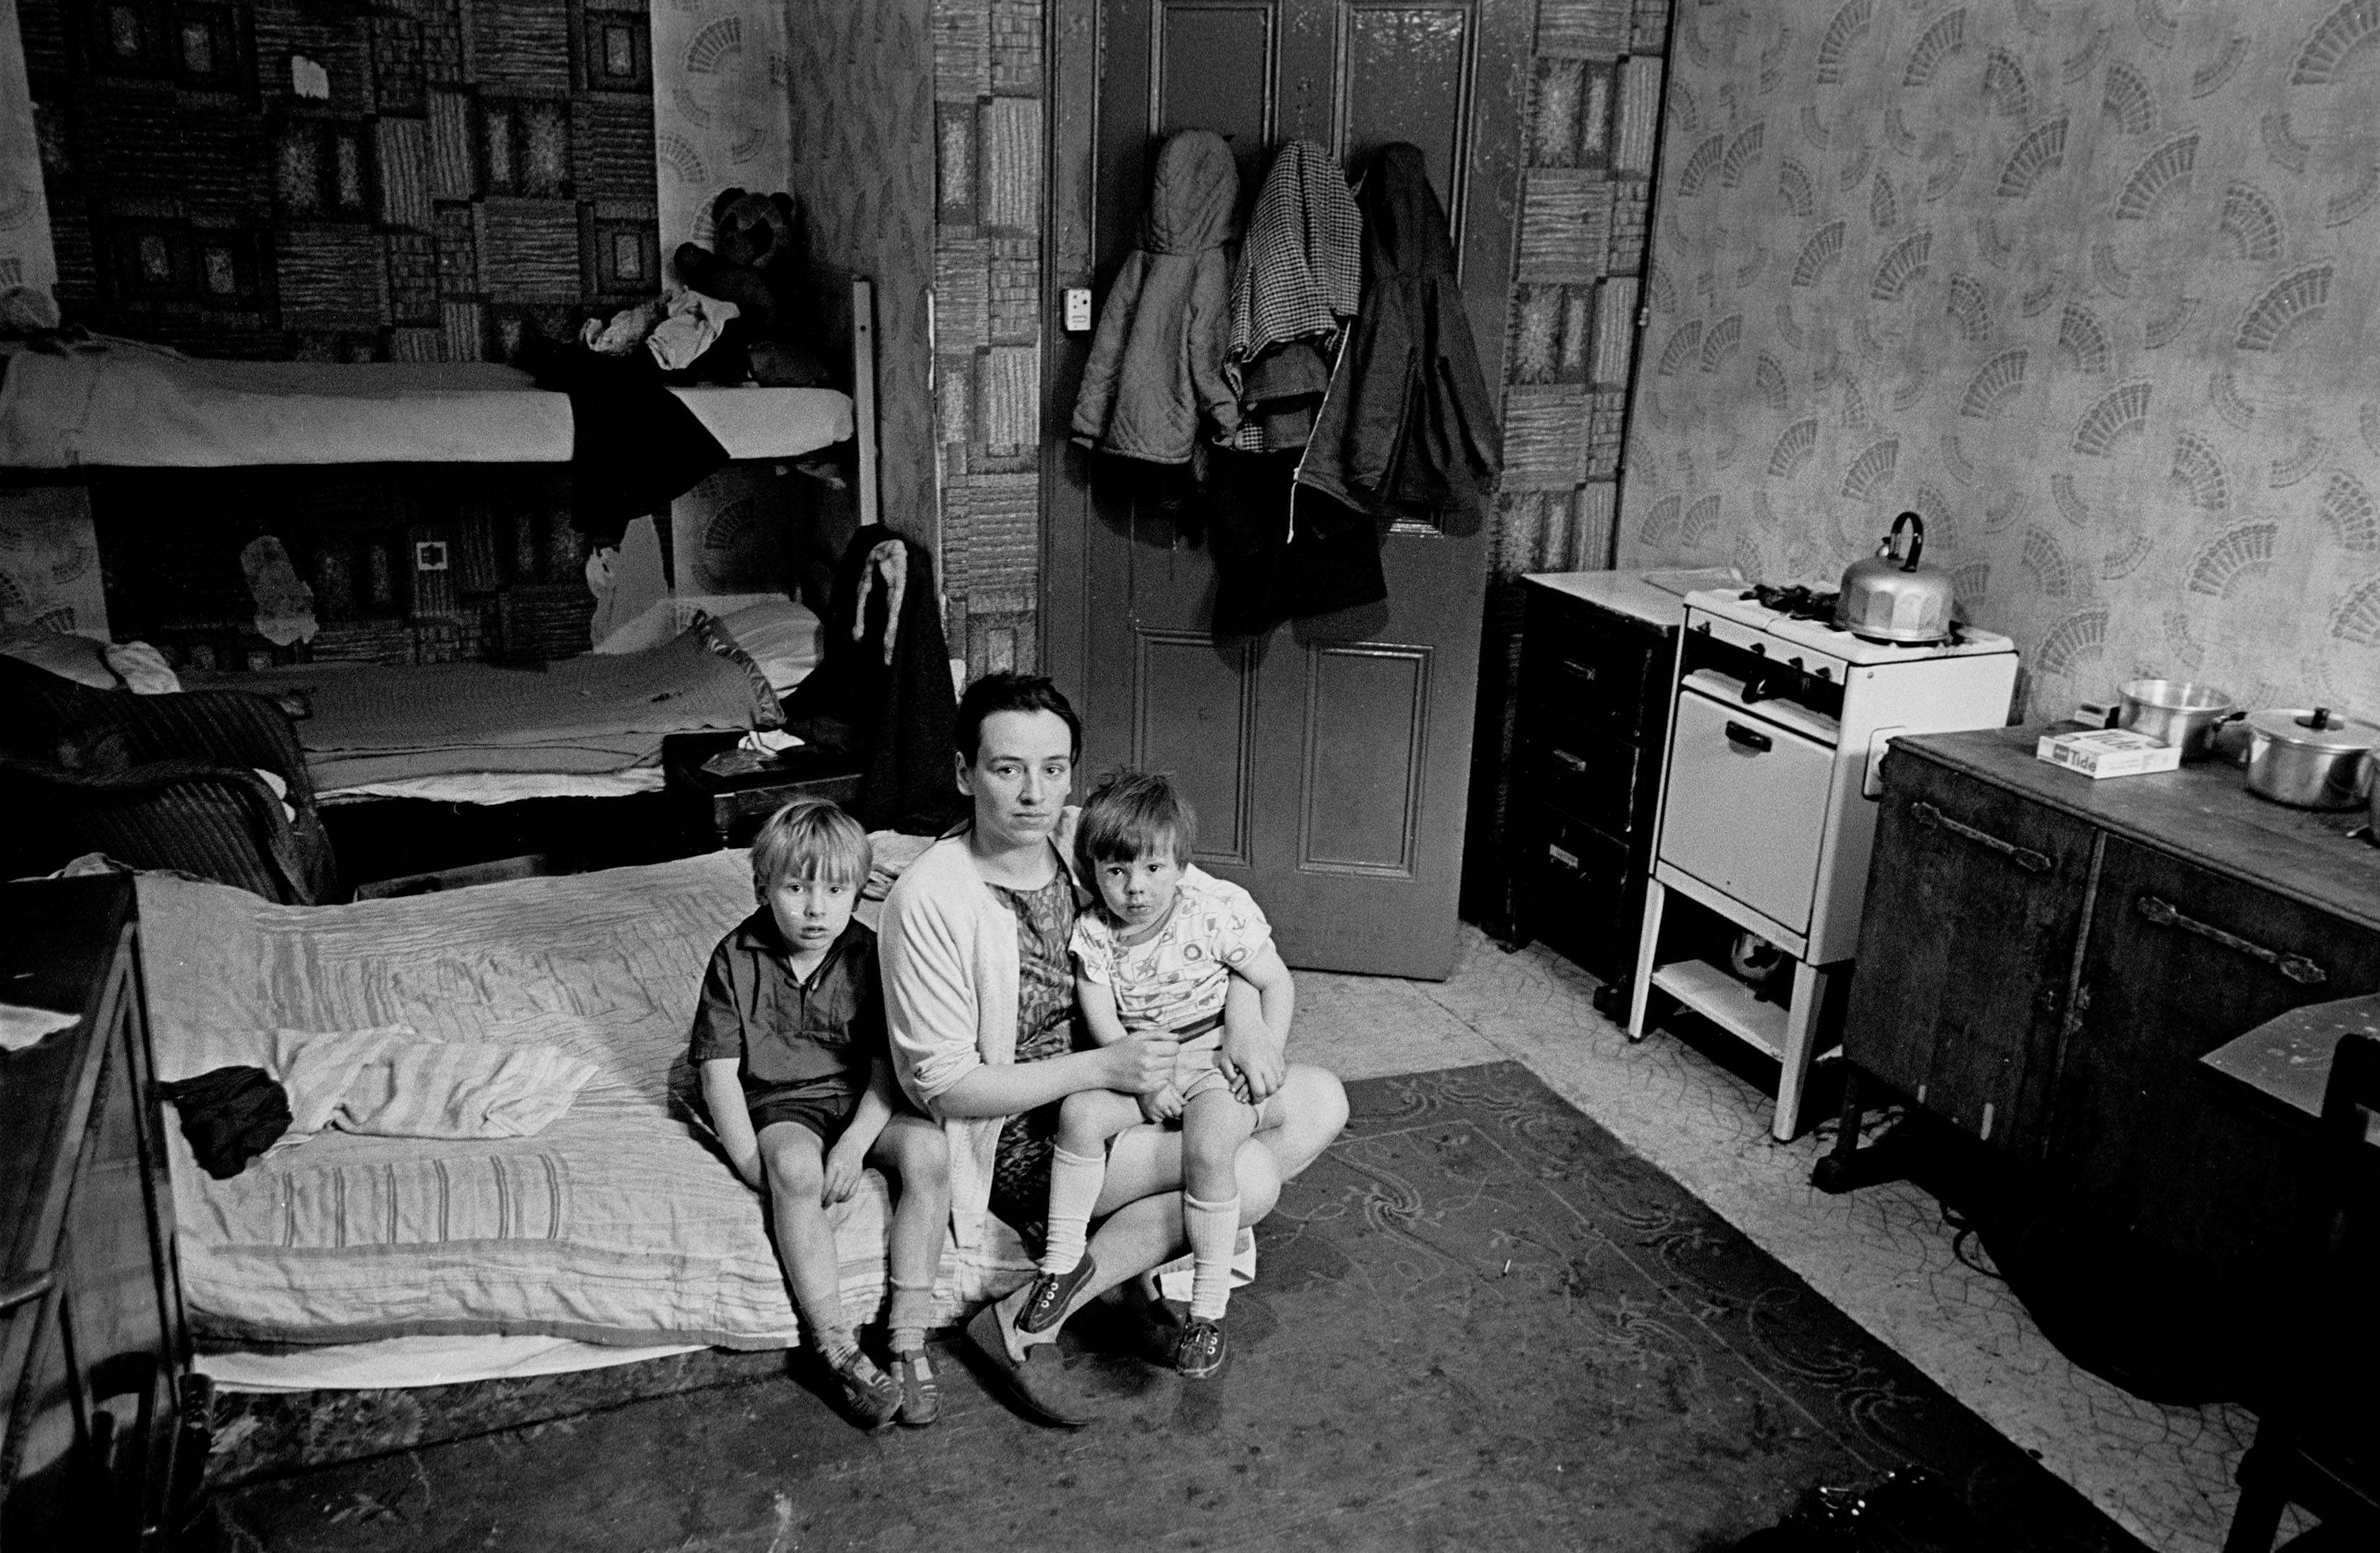 One Bedroom Apartment In The Bronx Powerful Photos Of Life In The Old Glasgow Tenement Blocks